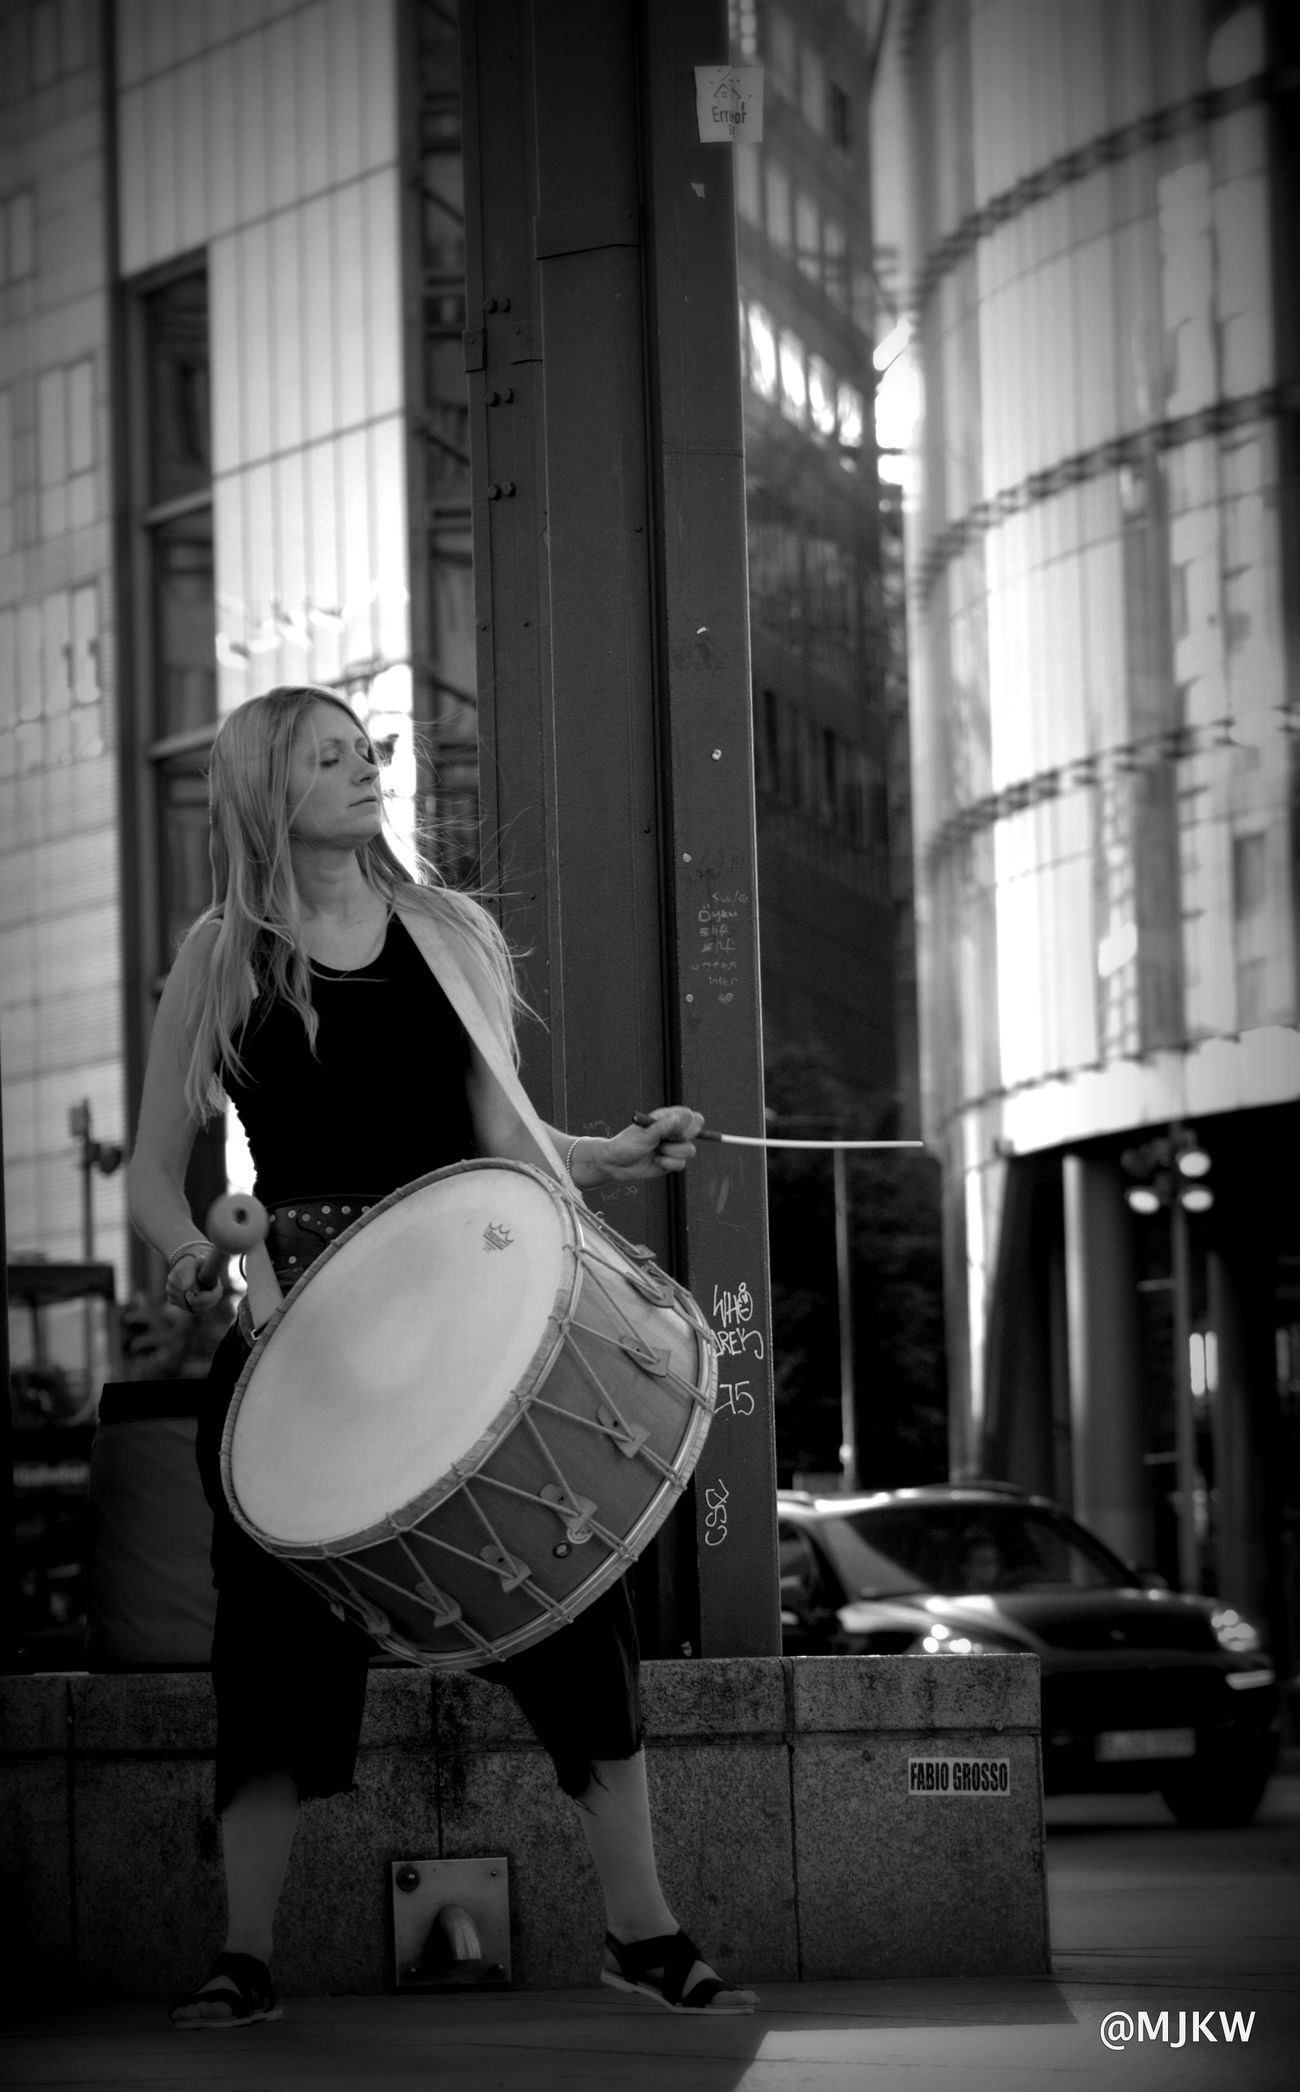 The Idrisi drummer in Berlin Only Women Female Drummer Arts Culture And Entertainment Adults OnlyOne Woman Only Musician Music Is My Life Drum Drummer Medival Art arts culture and entertainment Music City